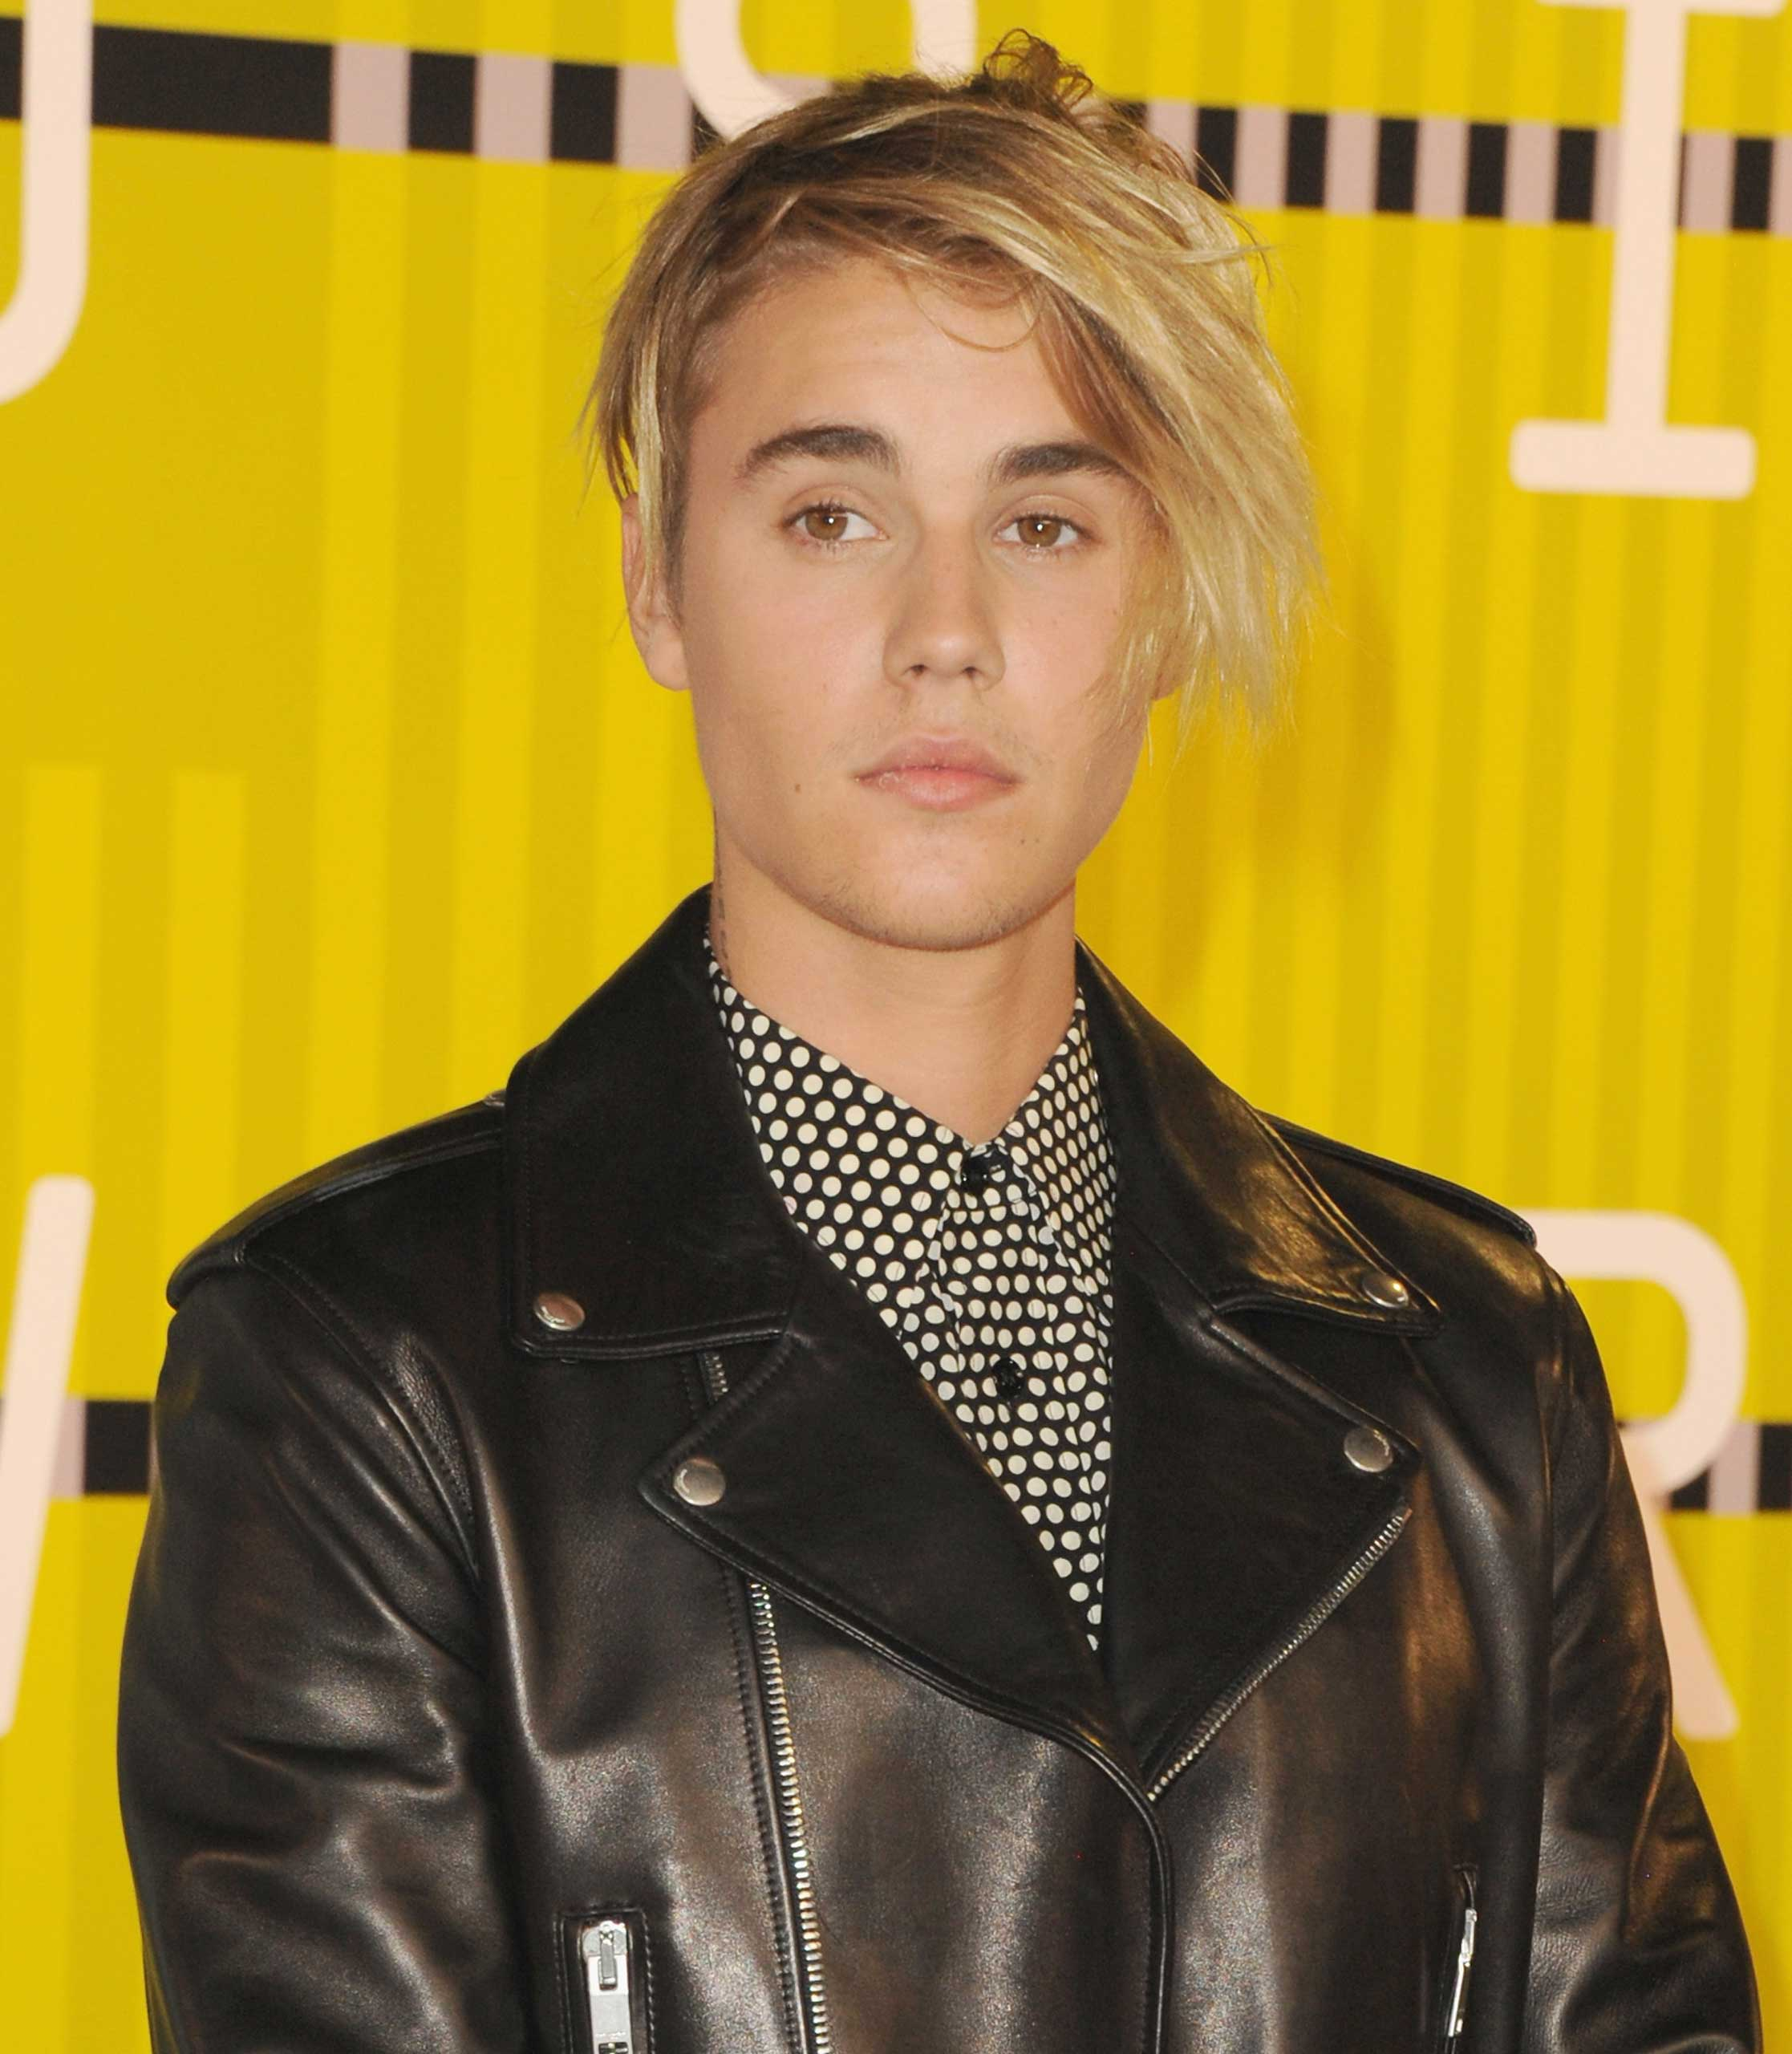 Singer Justin Bieber arrives at the 2015 MTV Video Music Awards at Microsoft Theater on August 30, 2015 in Los Angeles, California.